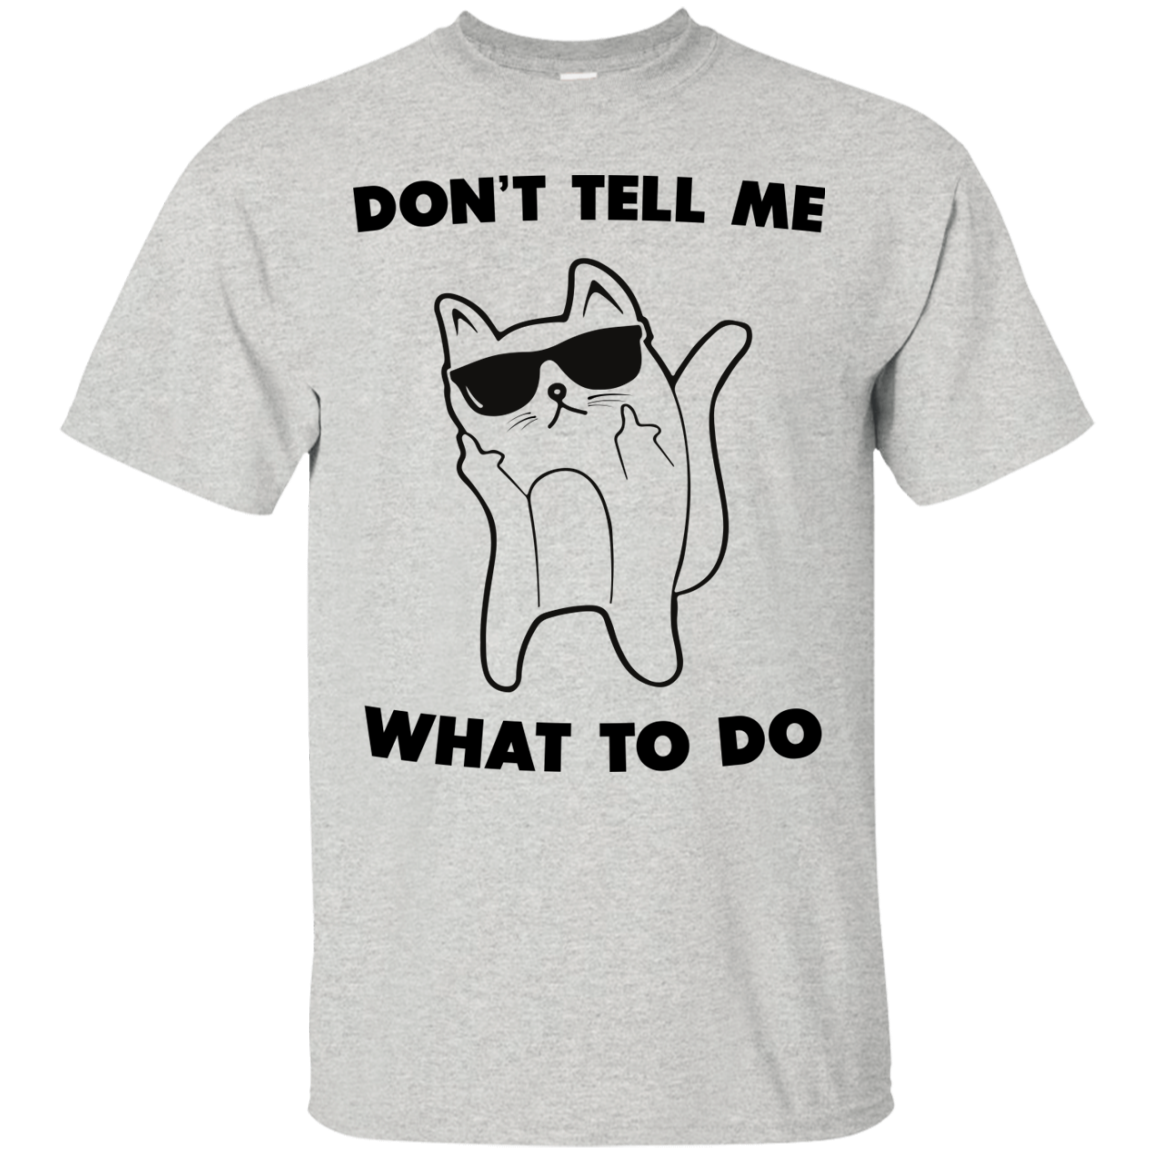 Don't tell me what to do unisex t shirt, tank, hoodie, sweater